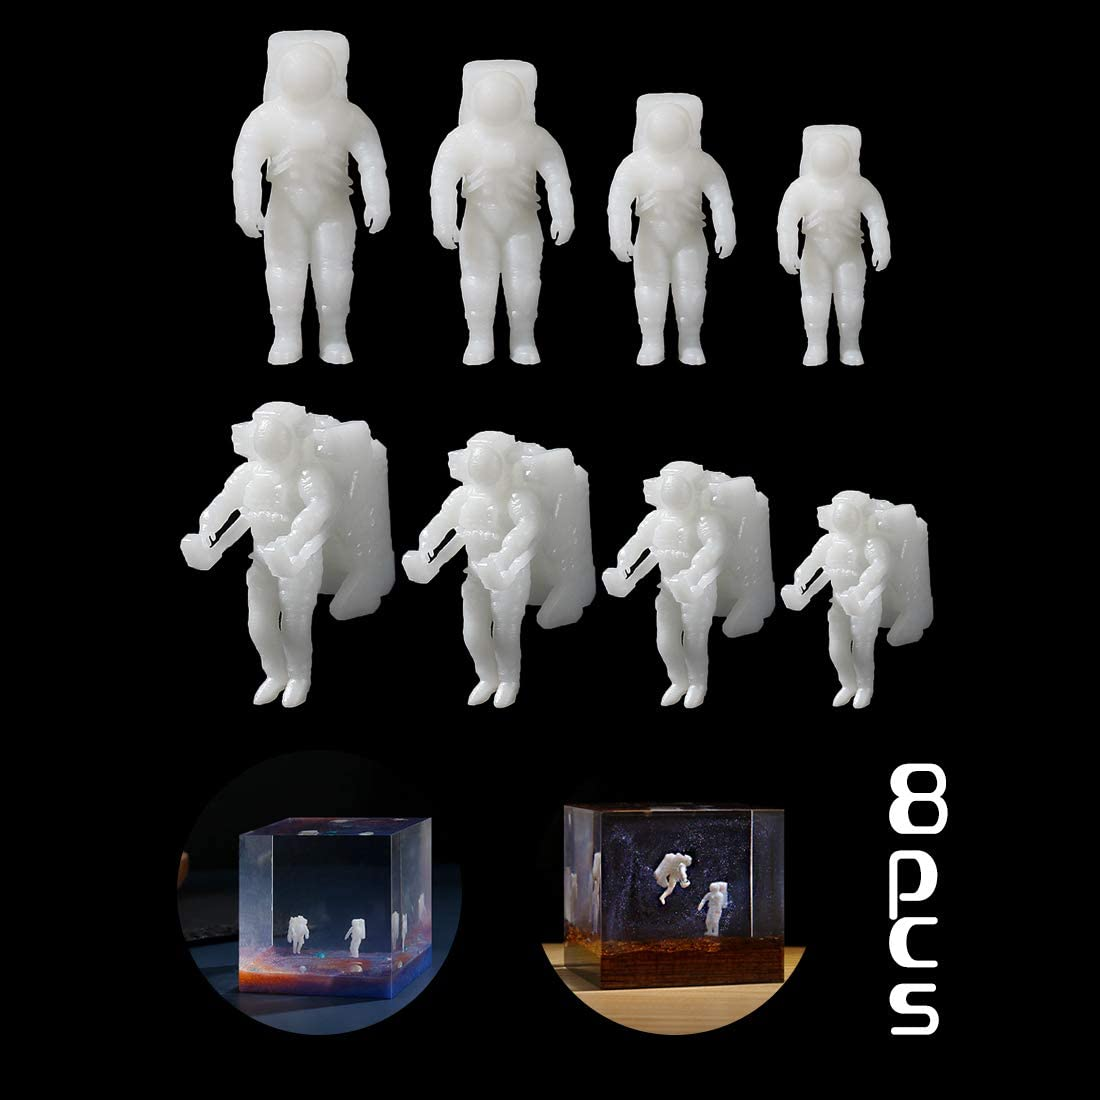 Resin Filler FineInno 8Pcs Resin Supplies Kit Plastic Small Astronaut Resin Jewelry Making Supplies Resin Fillers Material Fitment for Epoxy Mold Embellishment